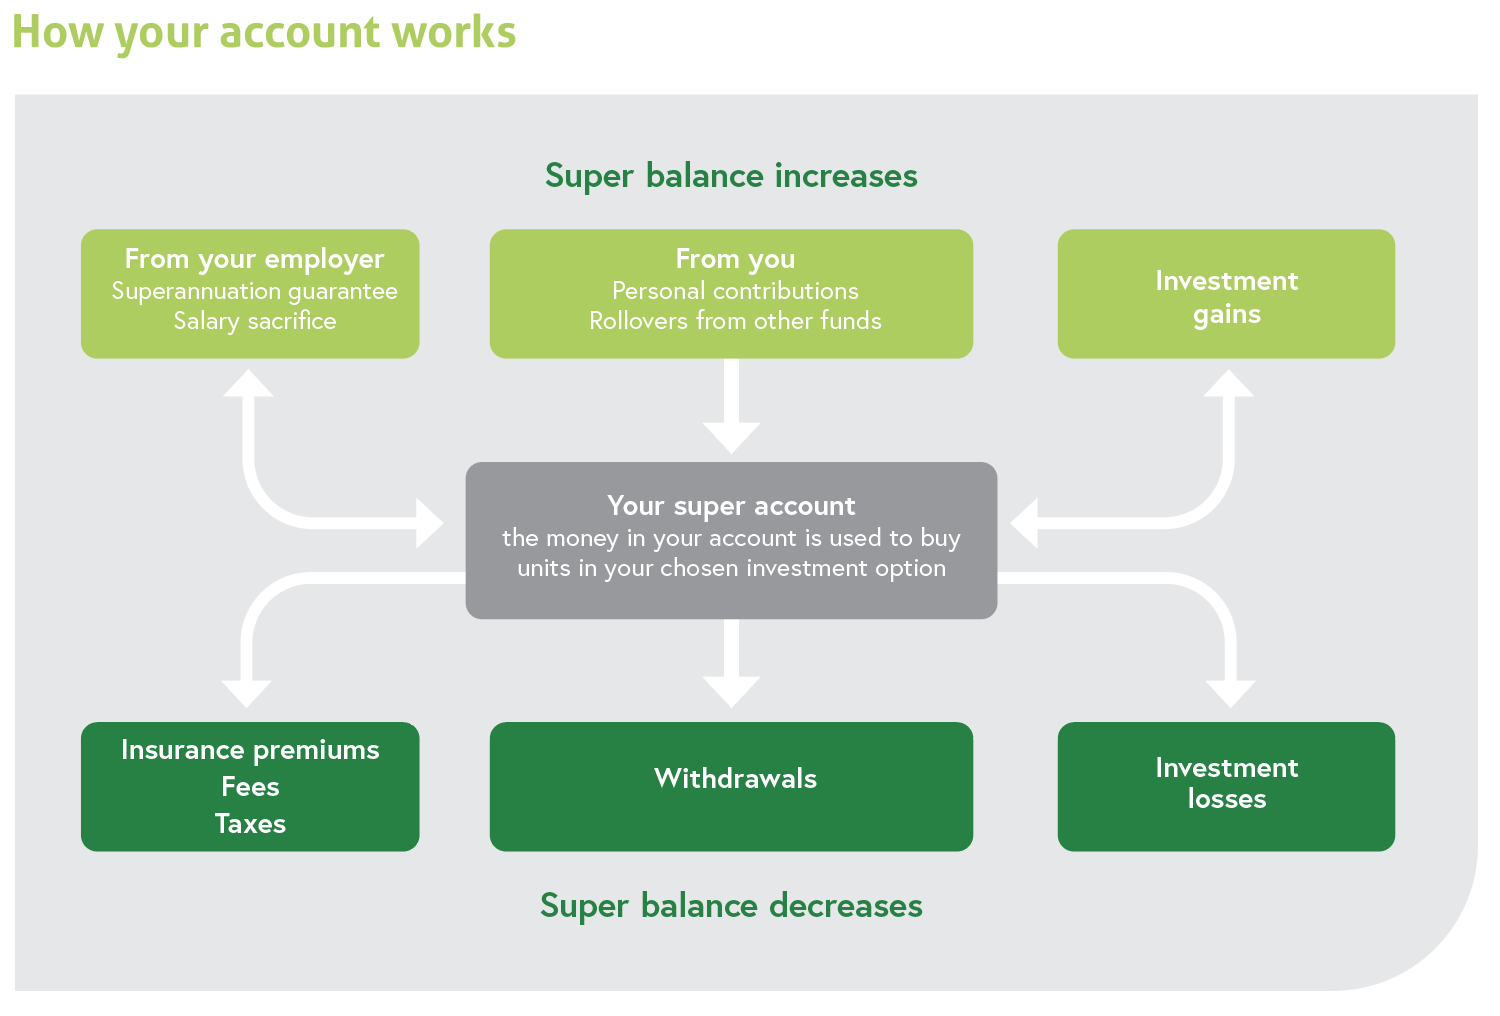 How your account works